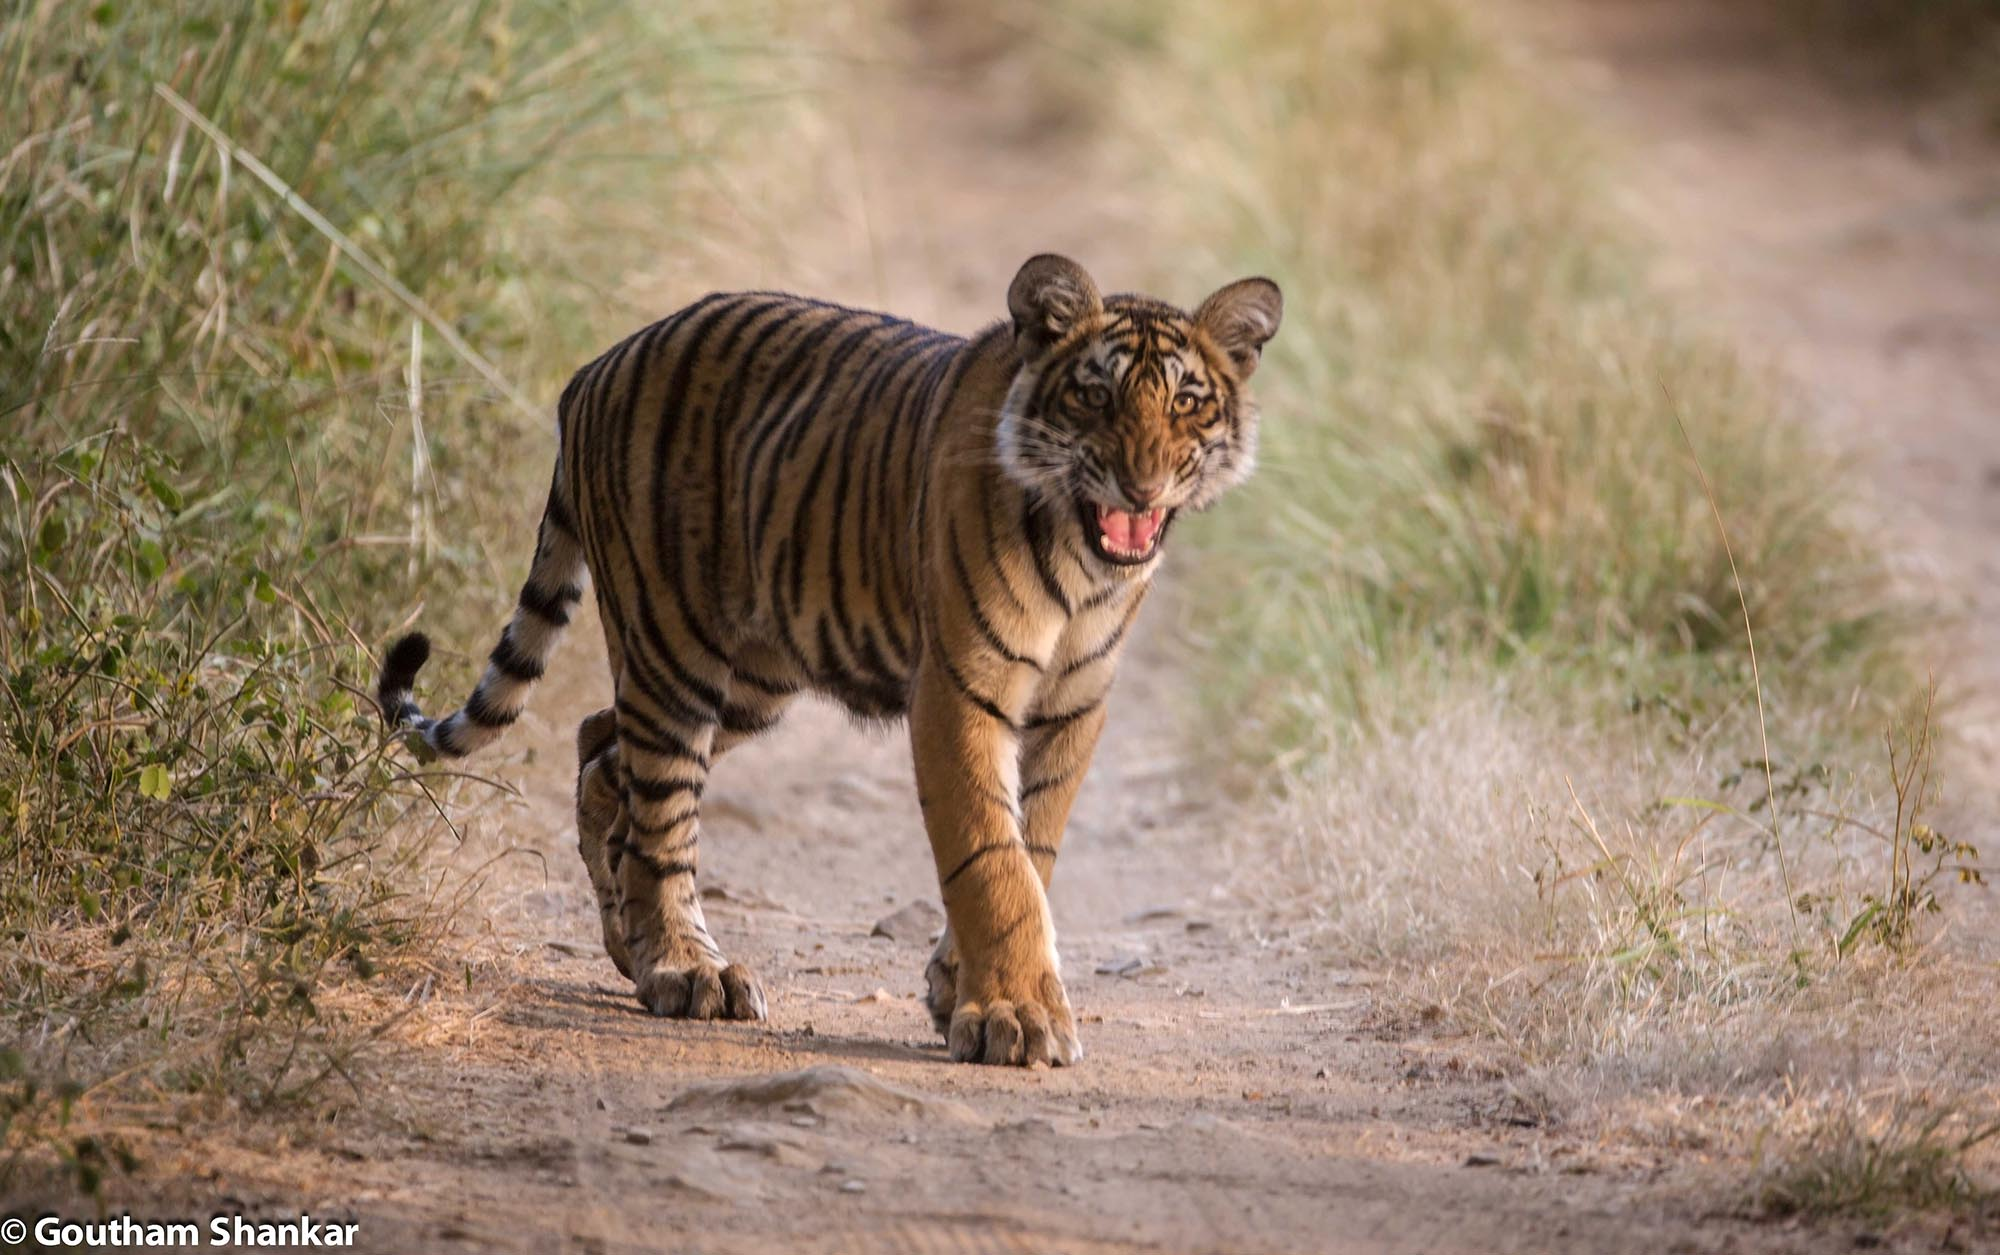 Cub2 of T19 in Ranthambore, Rajasthan